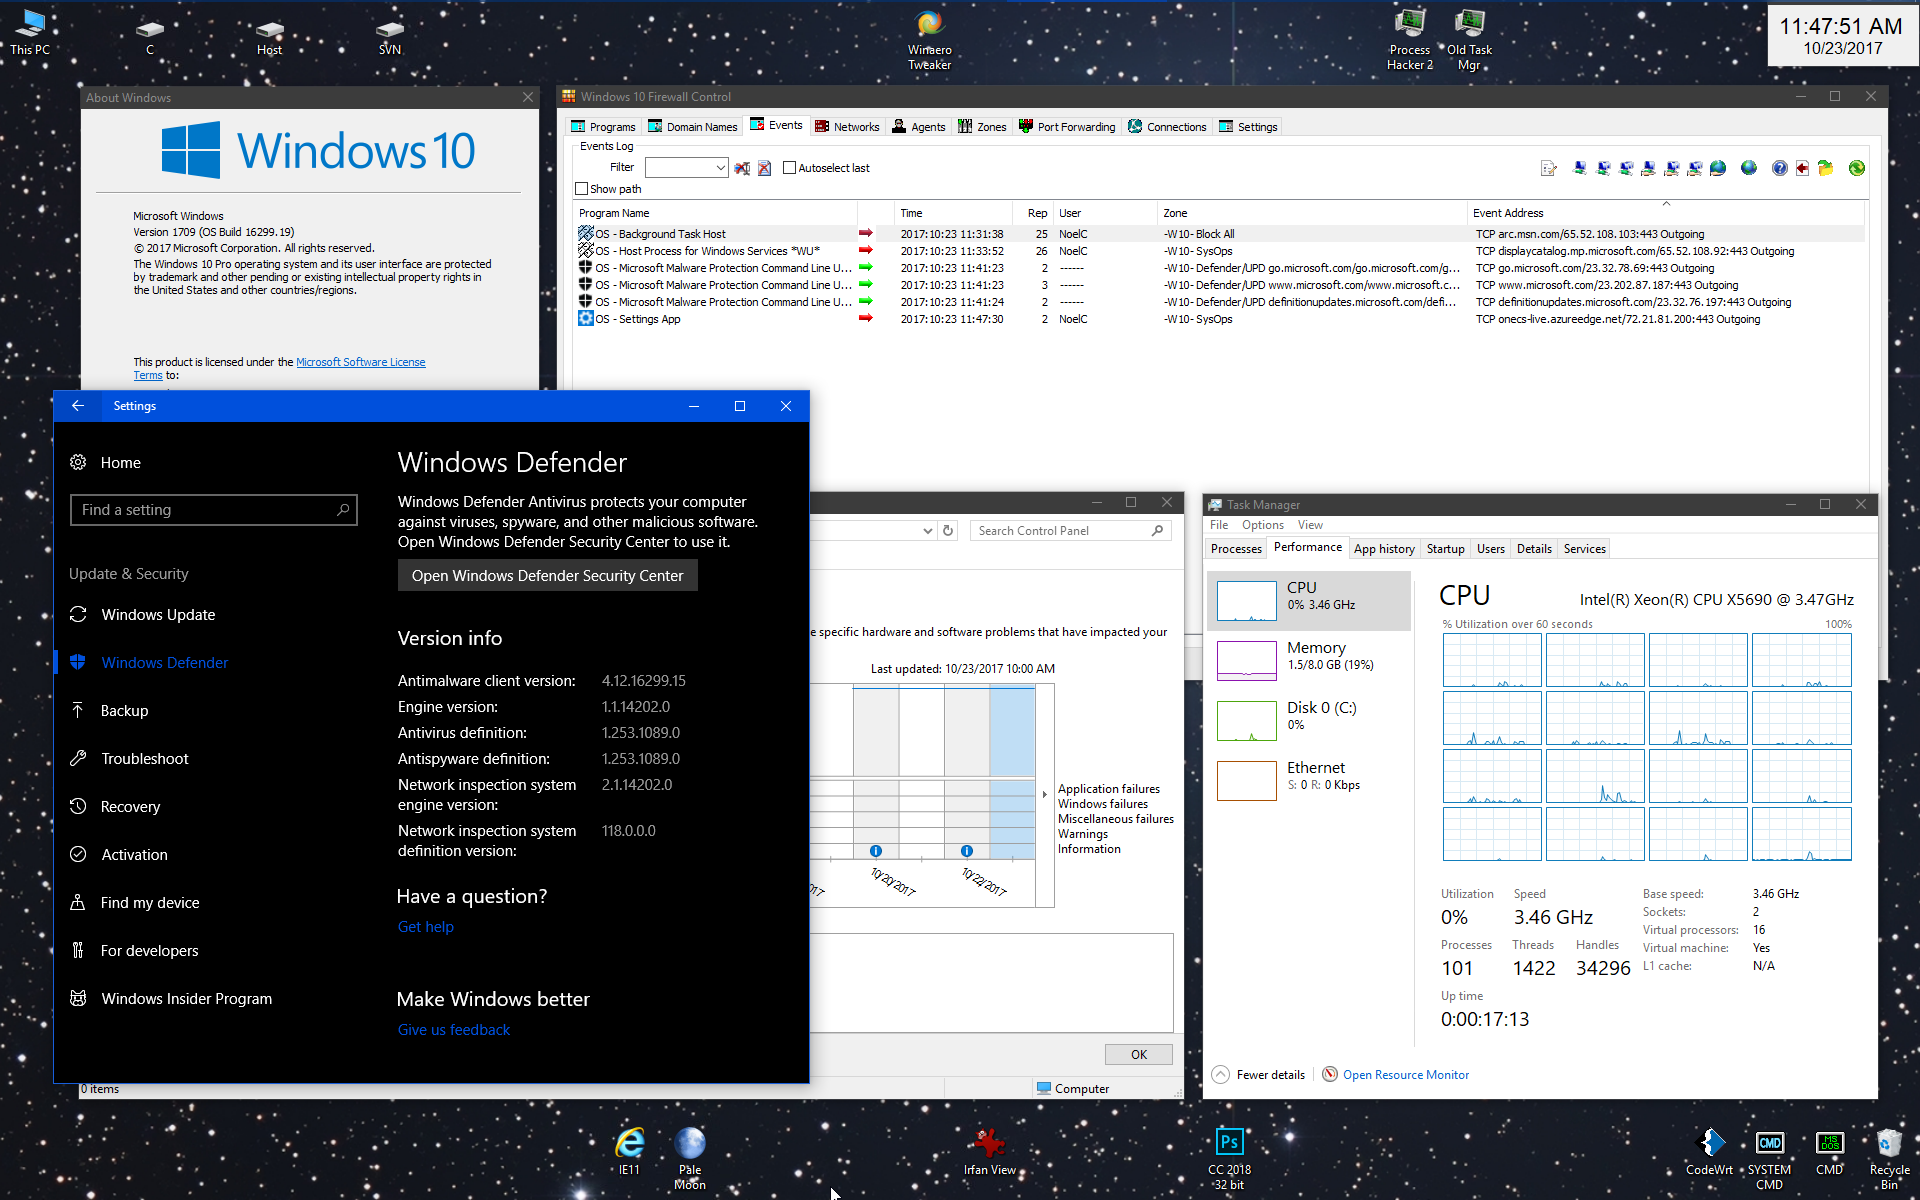 In Win10 1709, Windows Defender continues to pull down